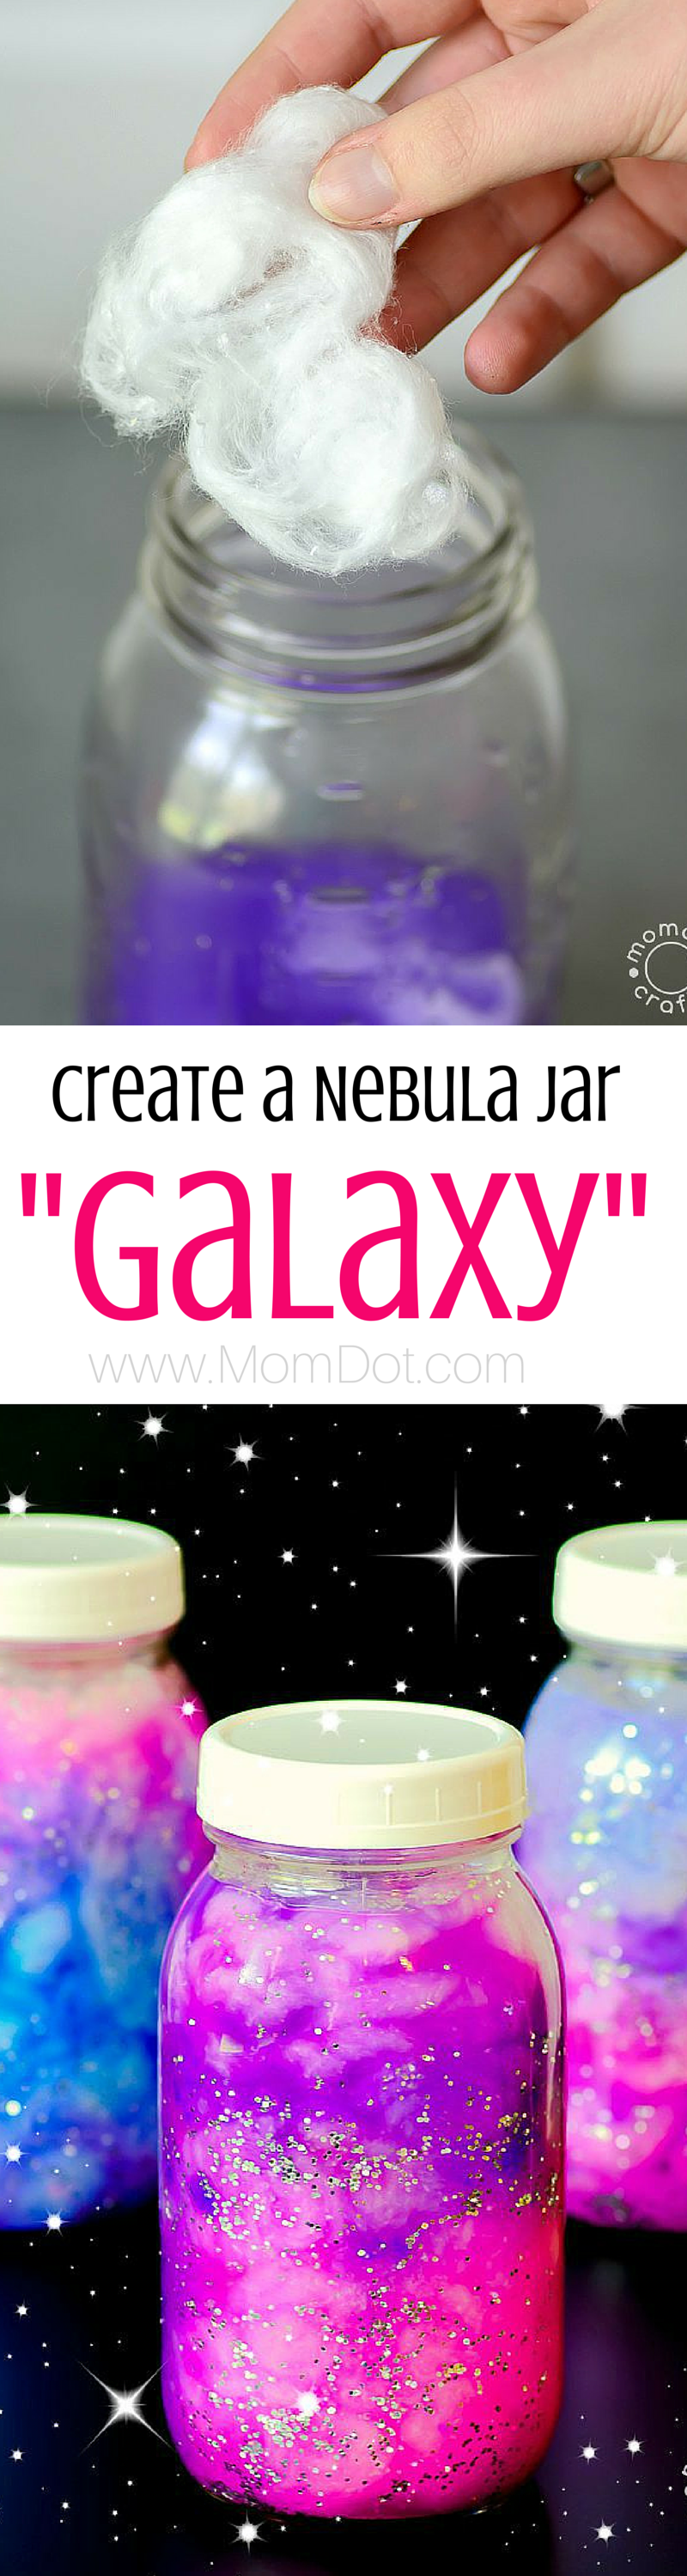 DIY Nebula Jar Instructions